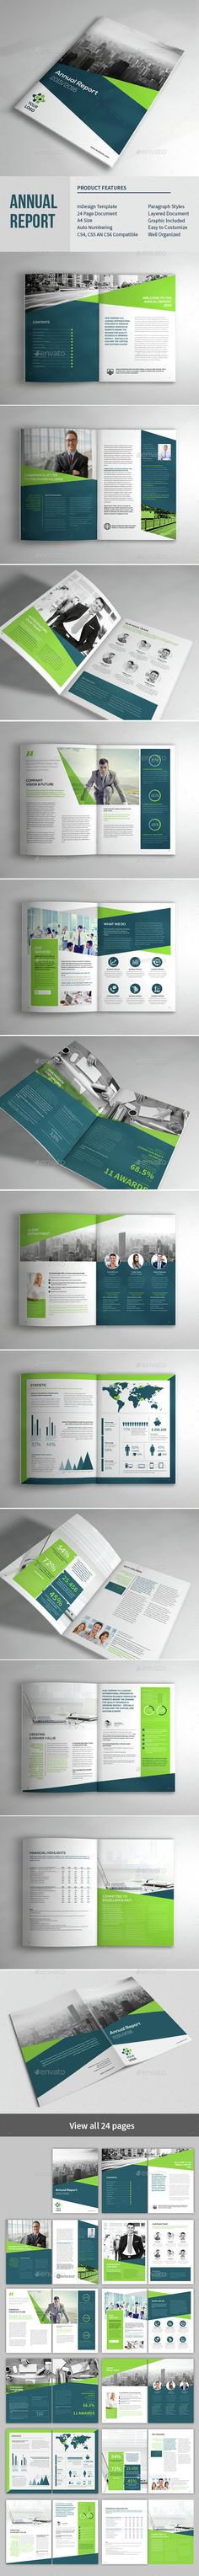 Buy Annual Report by Lamarena on GraphicRiver. An annual report is a comprehensive report on a company's activities throughout the preceding year. Graphic Design Brochure, Brochure Layout, Brochure Template, Print Layout, Layout Design, Ppt Design, Annual Report Layout, Annual Reports, Magazine Ideas